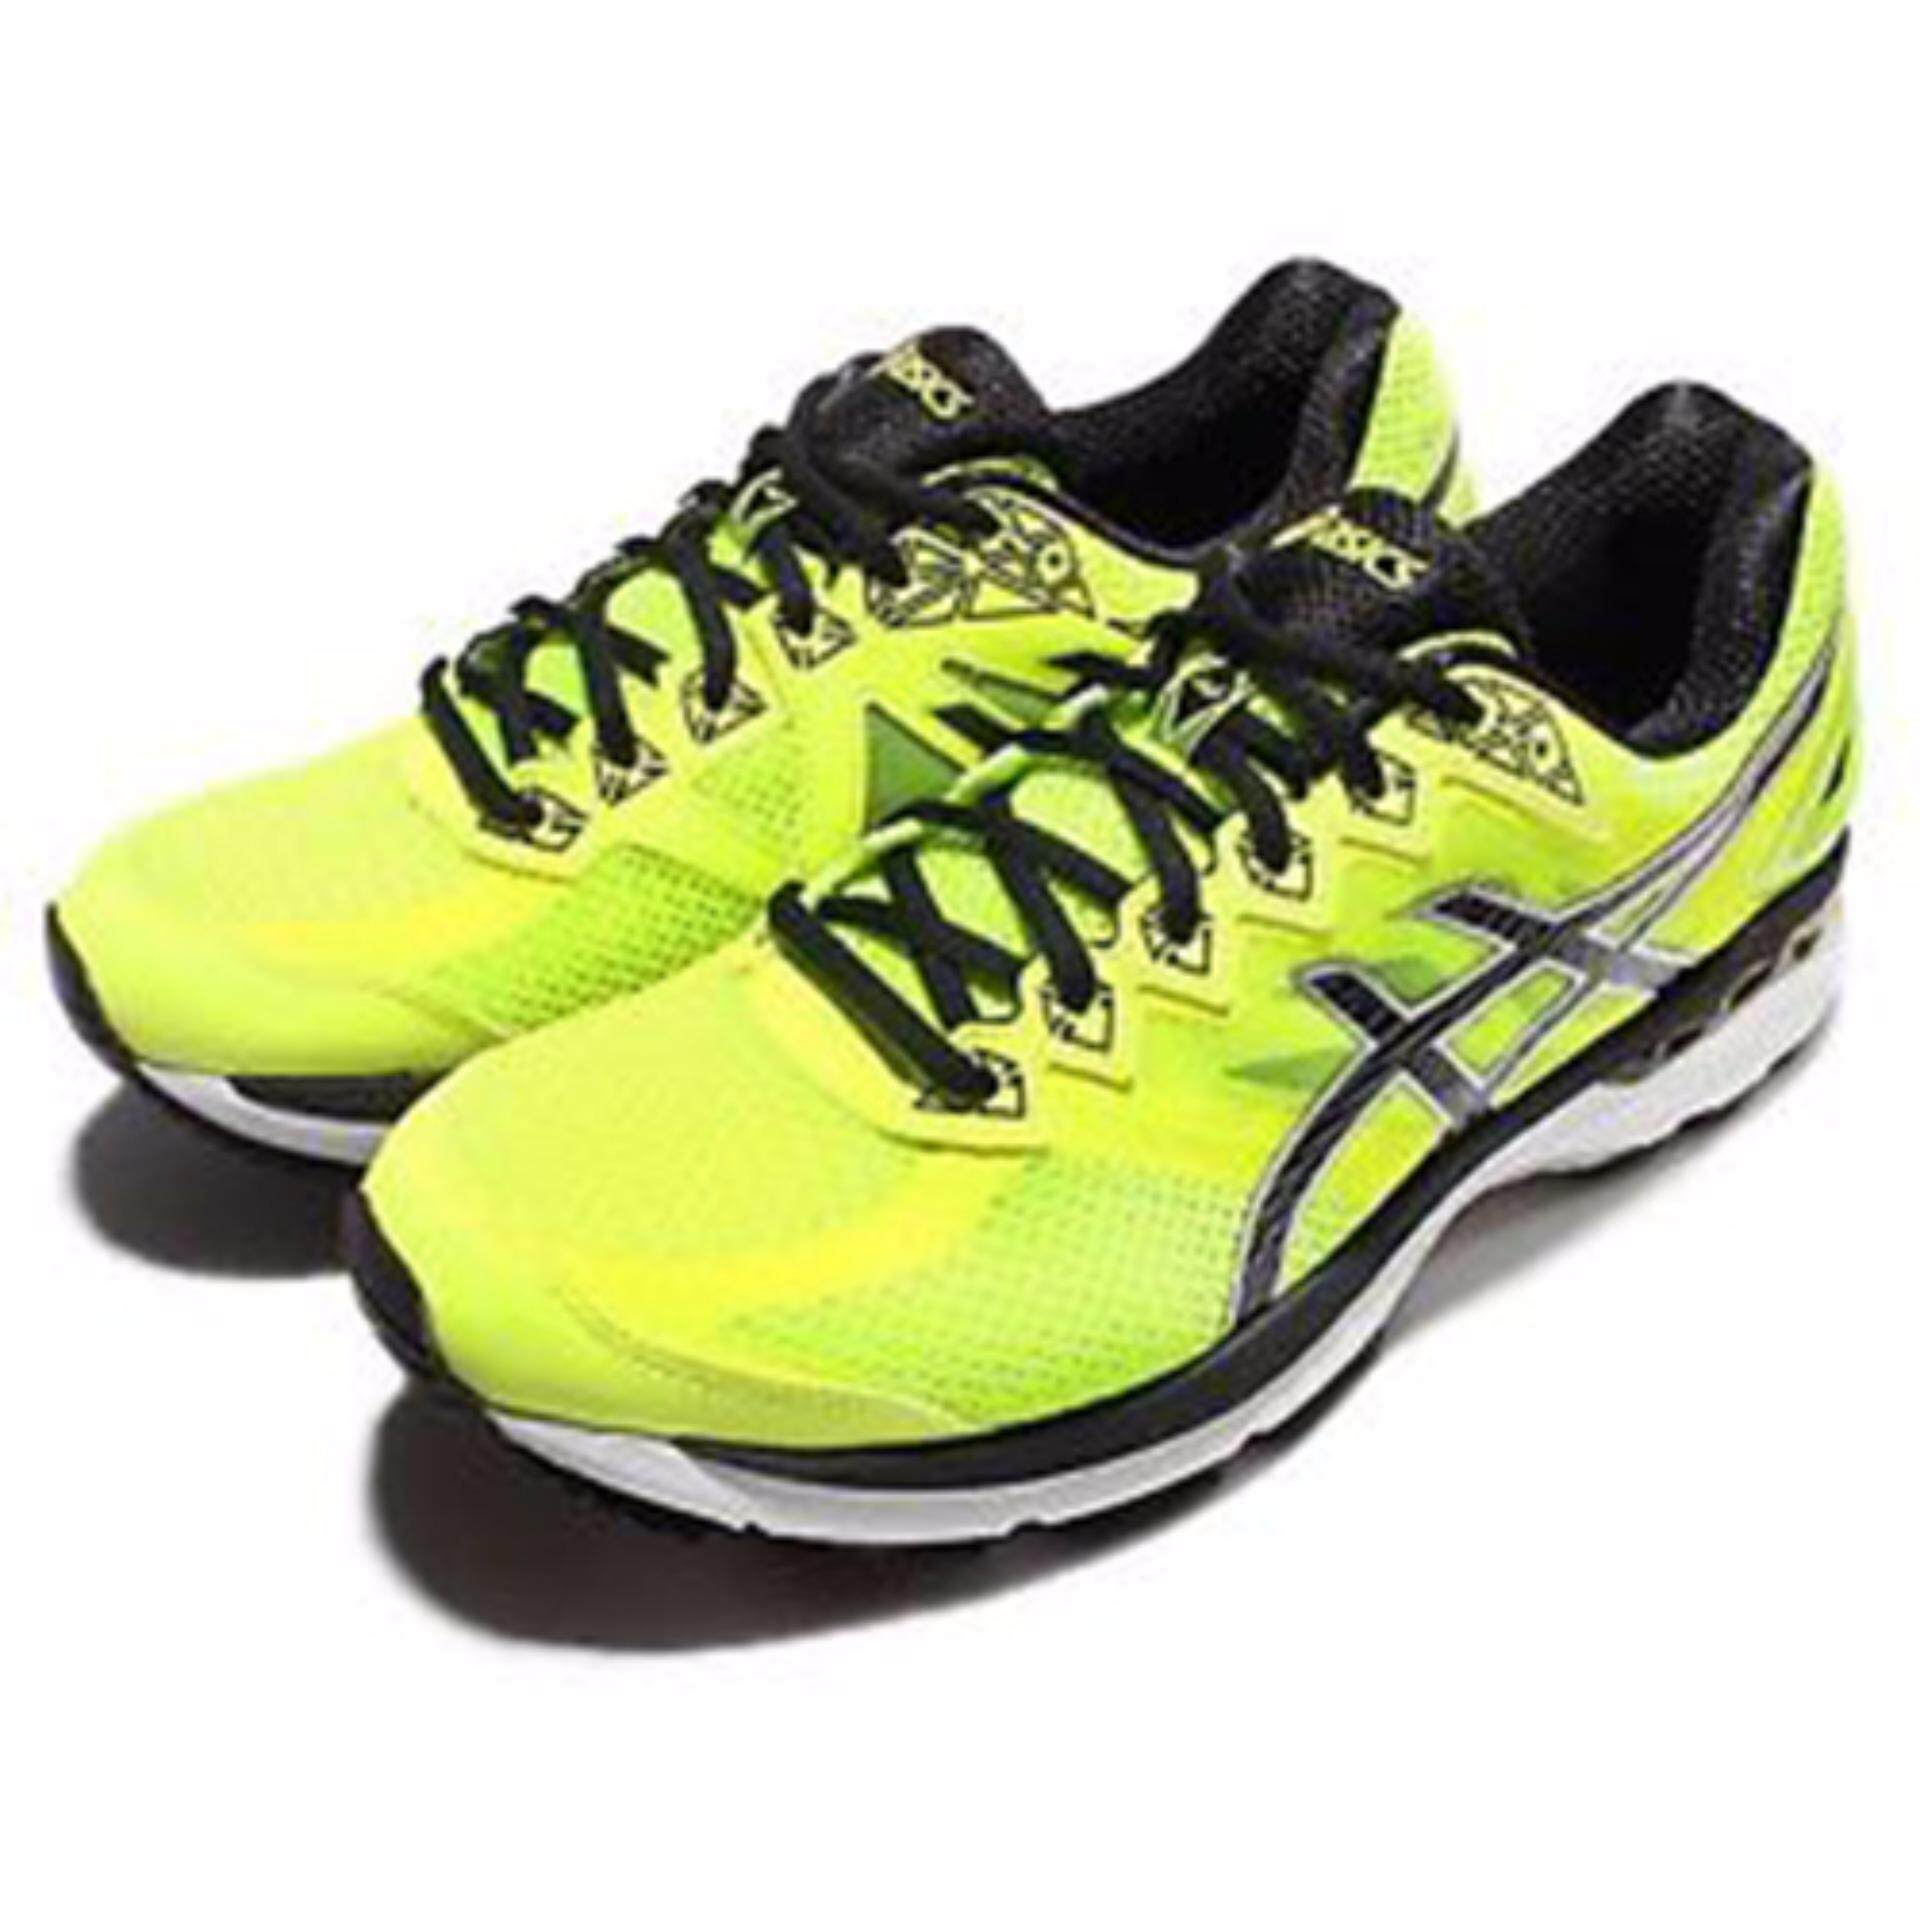 c501822d79ae Discounted Buy Malaysia To Up Online Off55 gt  Asics qWfArWF60